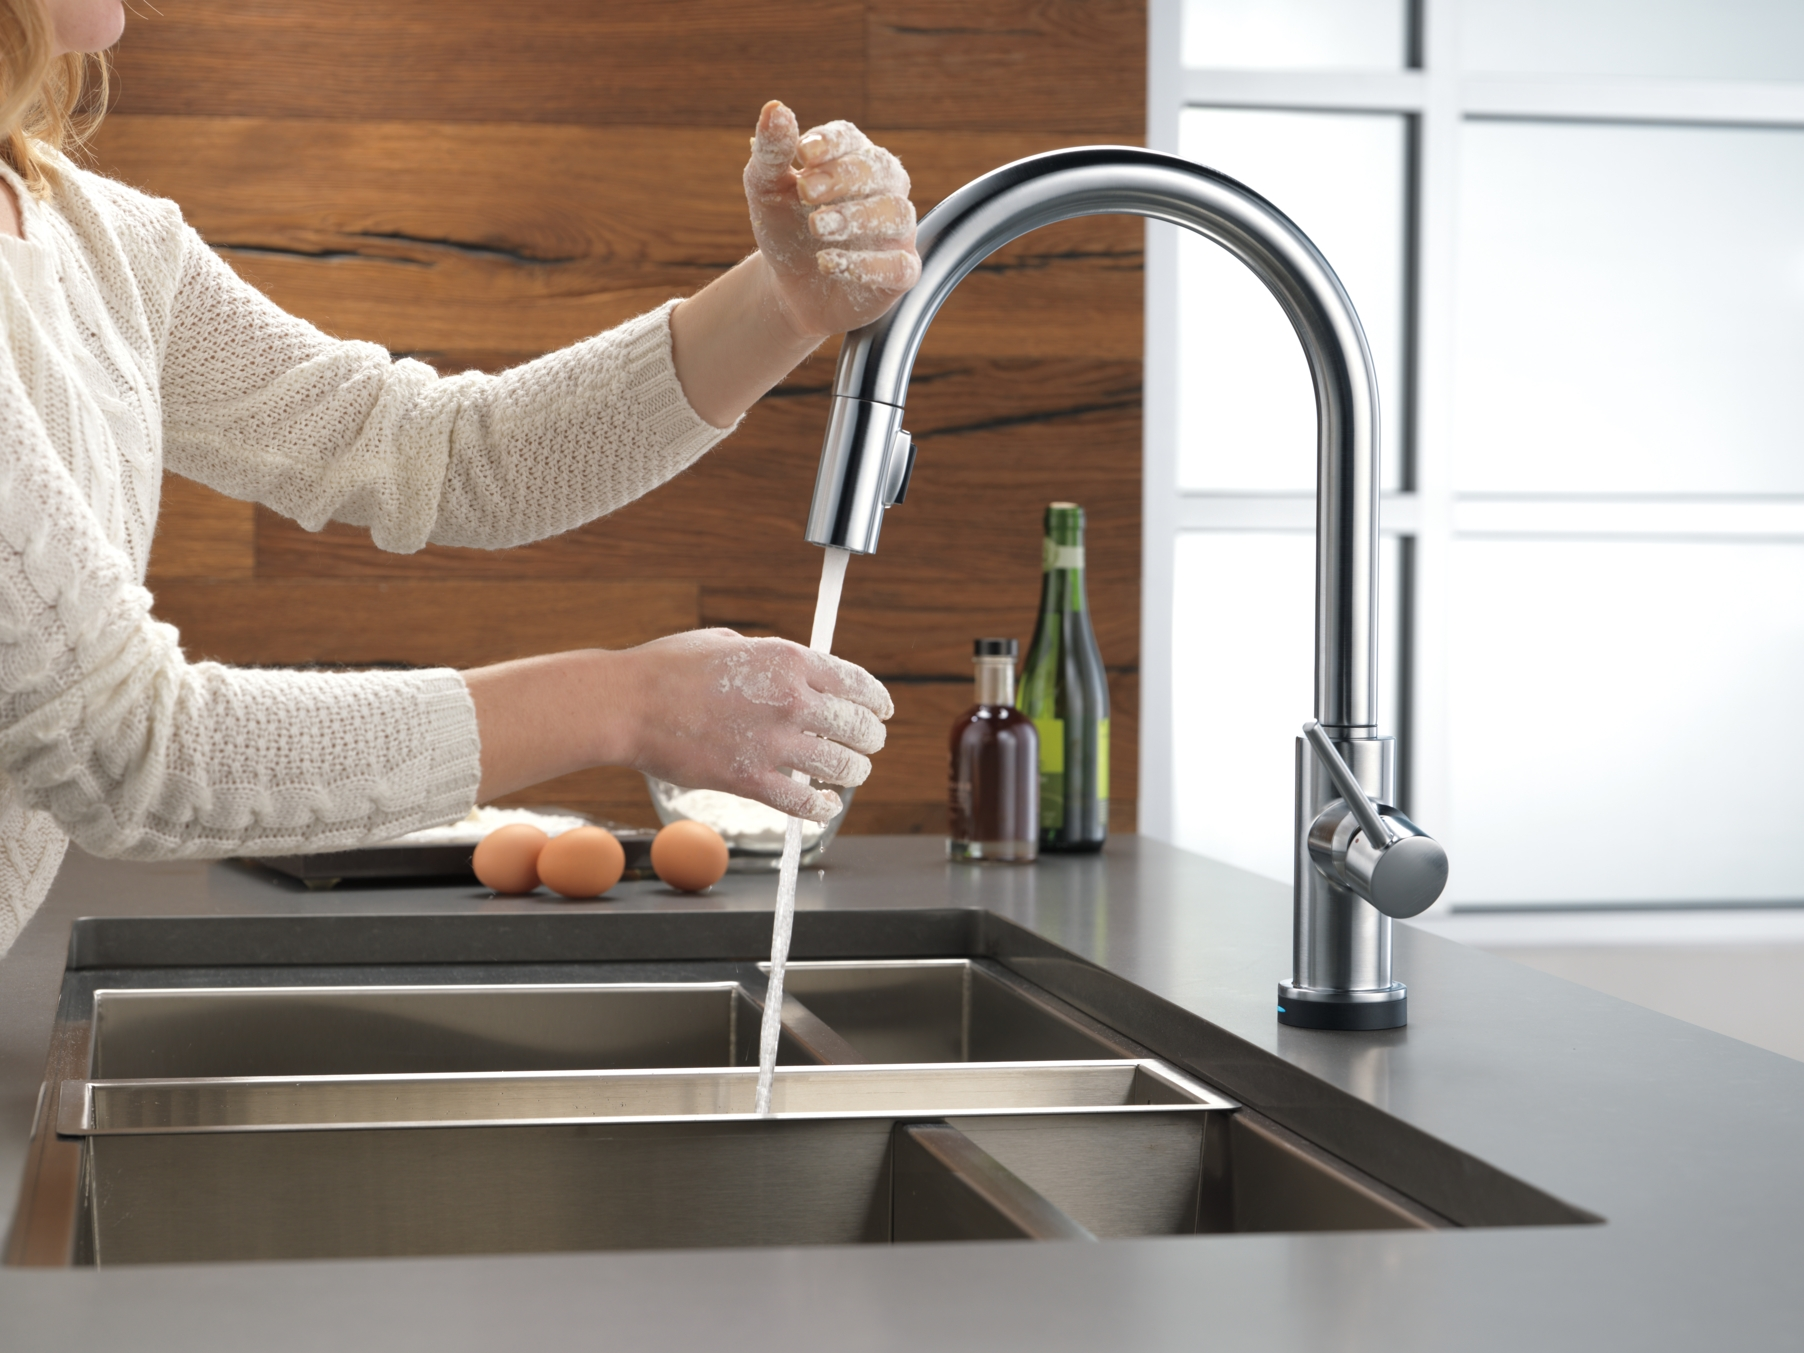 Ideas, delta touch sink faucet delta touch sink faucet trinsic kitchen collection kitchen faucets pot fillers and 1804 x 1353  .